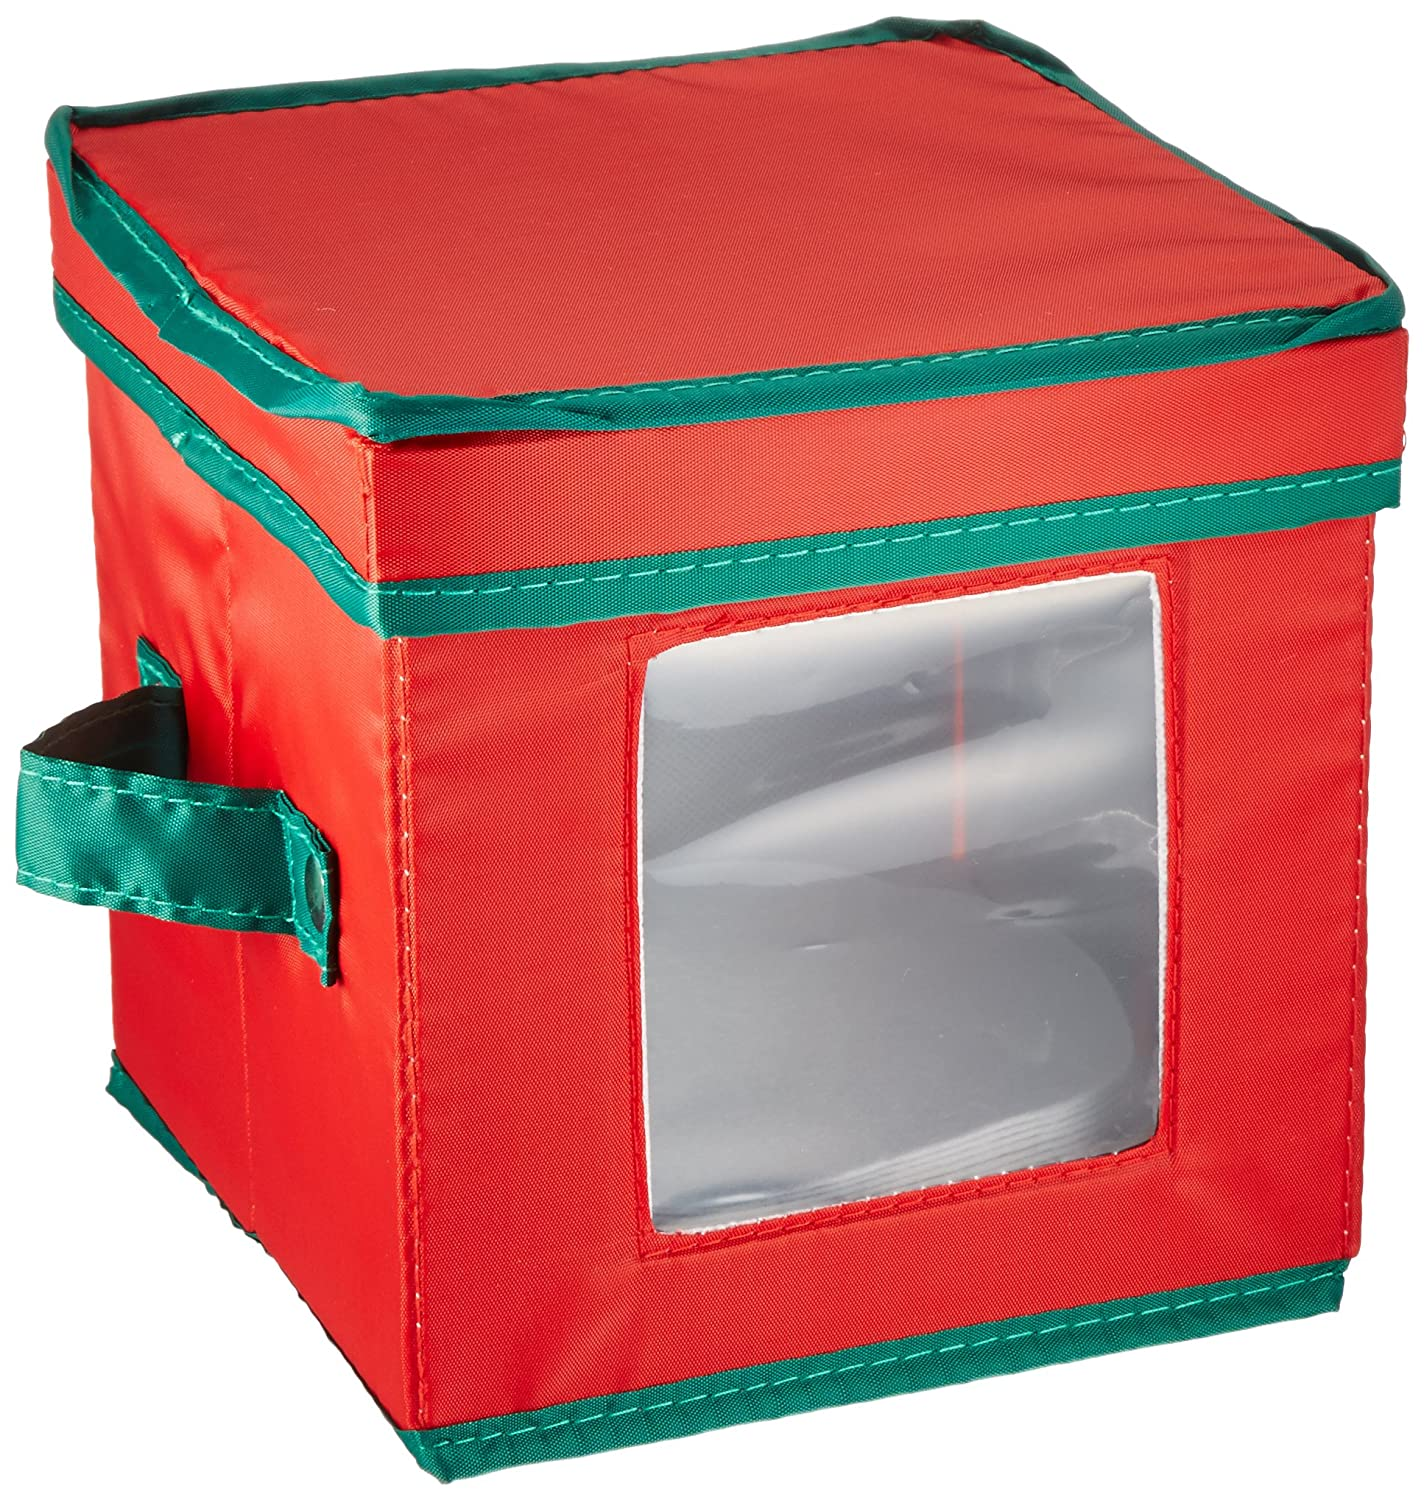 Household Essentials 537RED Holiday China Storage Chest with Lid and Handles | Charger Plates and Platters | Red Canvas with Green Trim